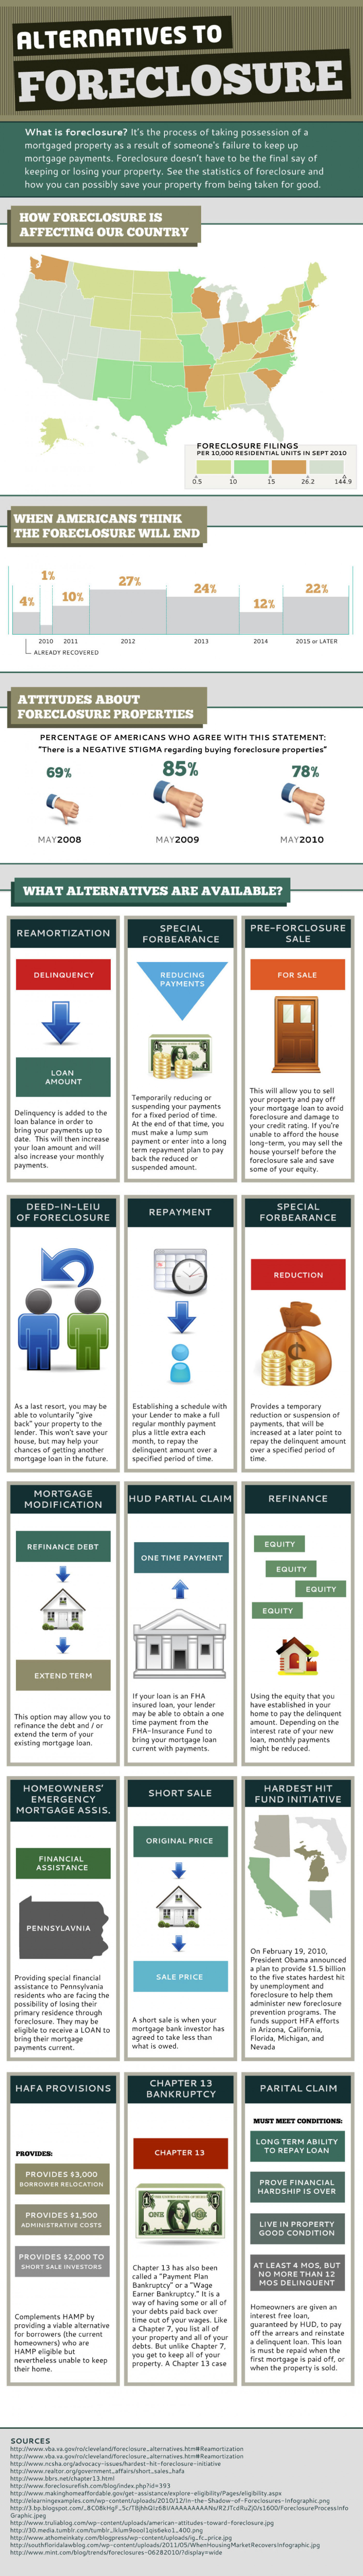 Alternatives to Foreclosure Infographic